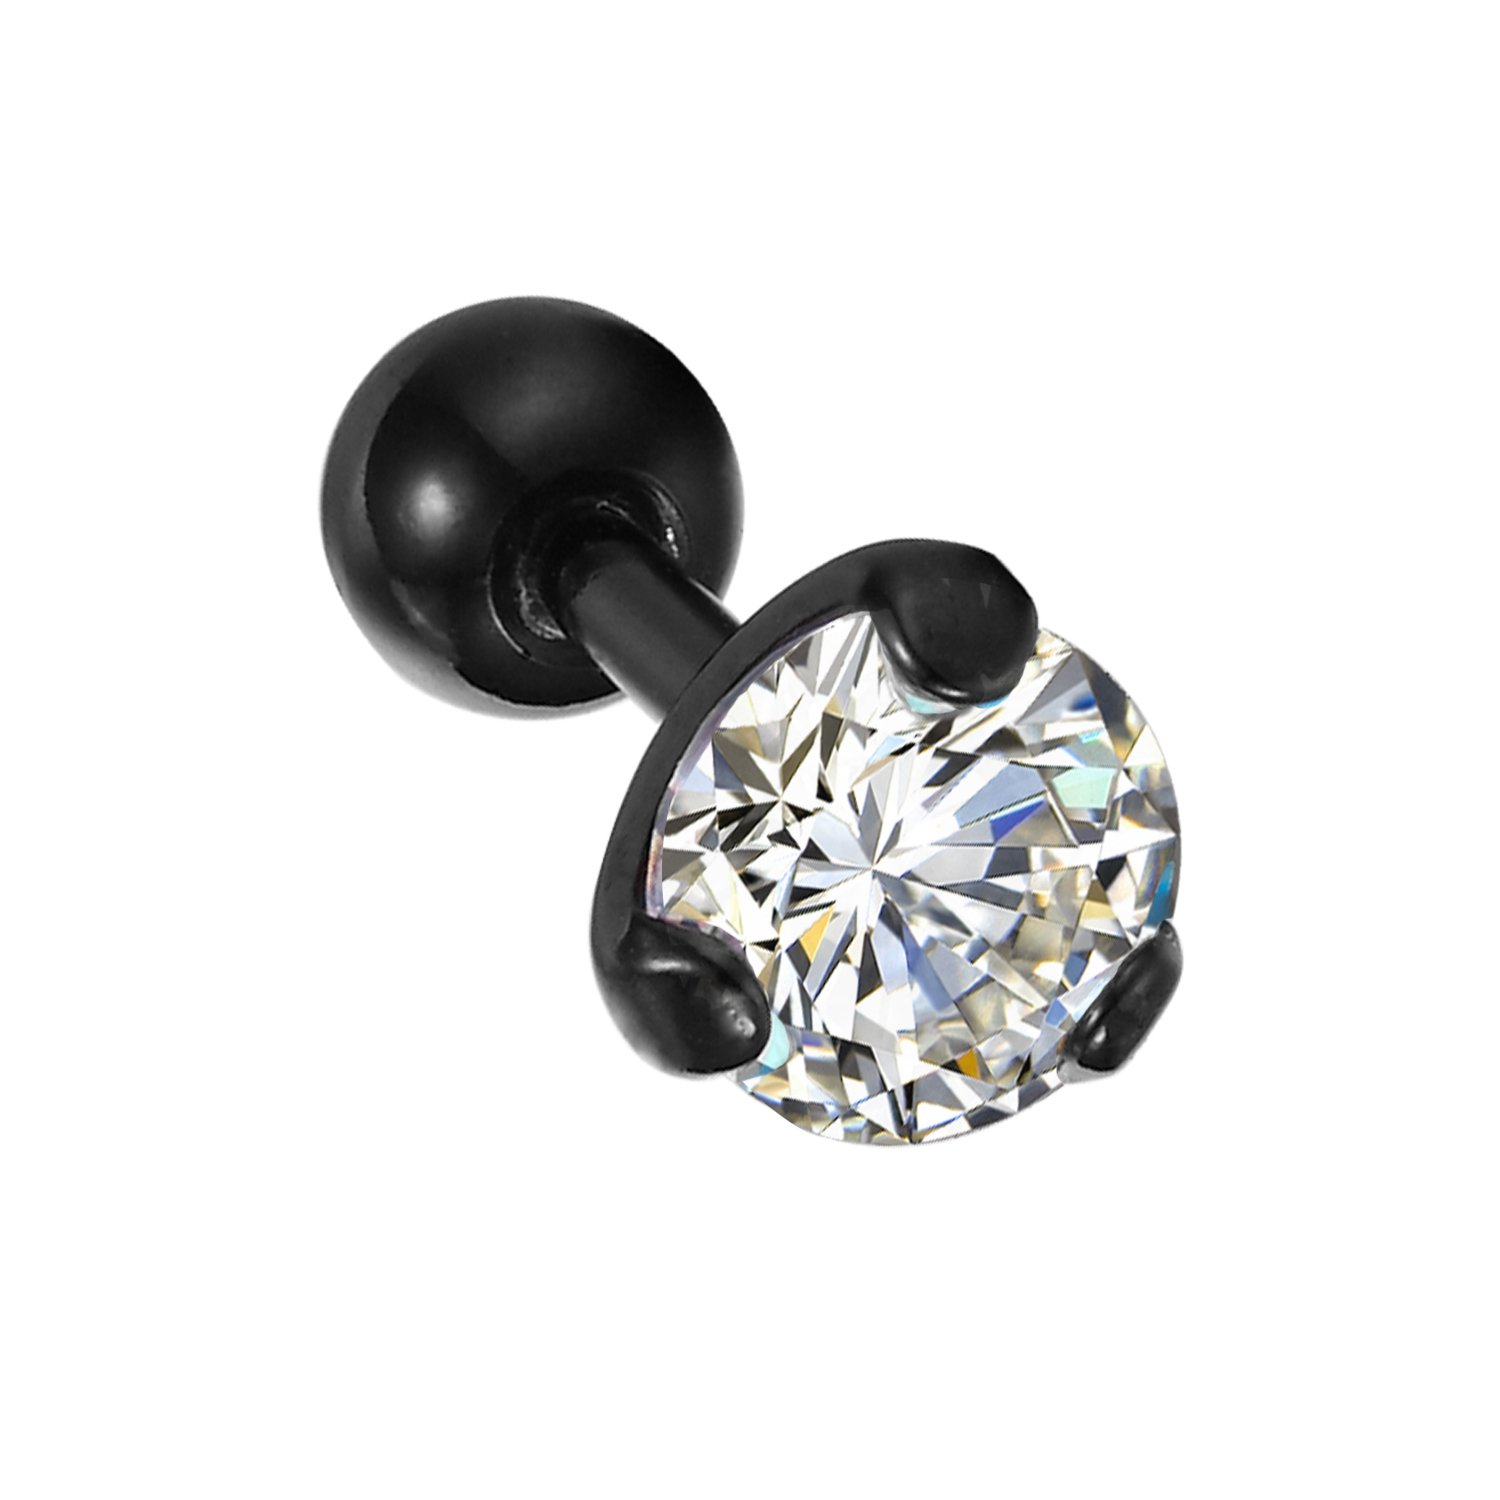 Amazon: Bodyj4you Tragus Earring Stud Black With Crystal Cartilage  Earring 16g: Jewelry